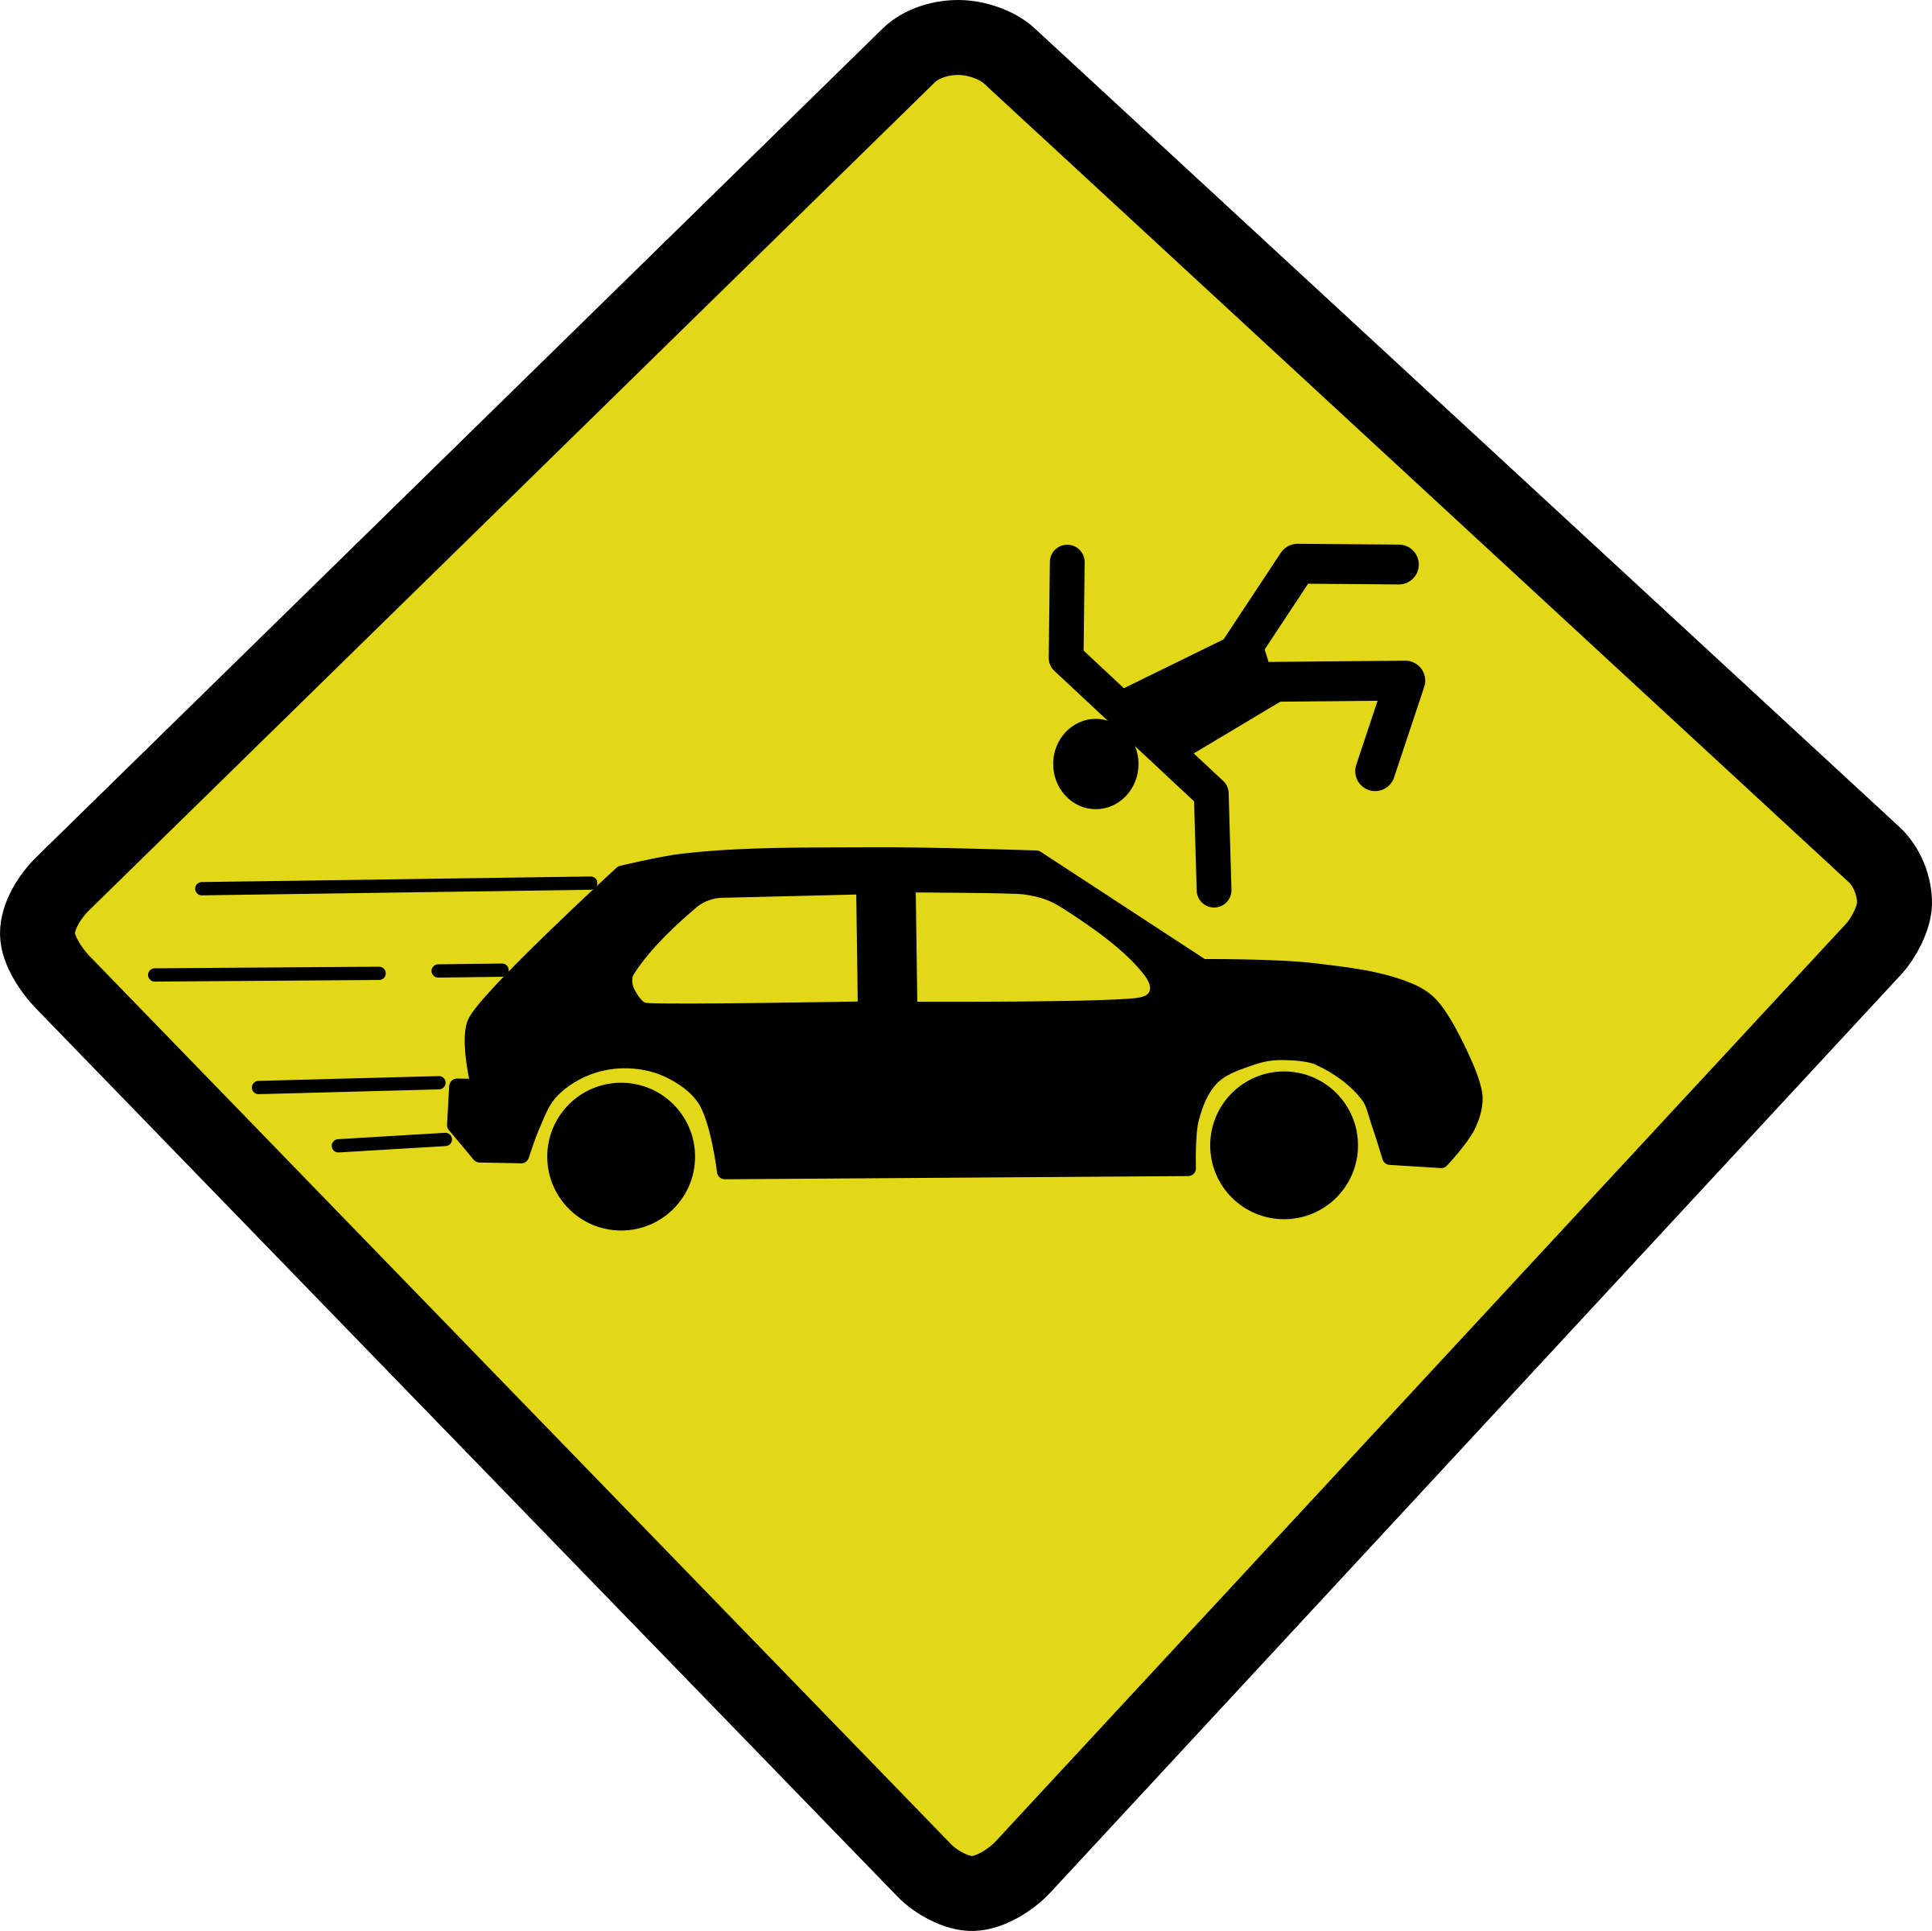 Clipart car wreck graphic royalty free download Truck Car Crash Clip Art graphic royalty free download